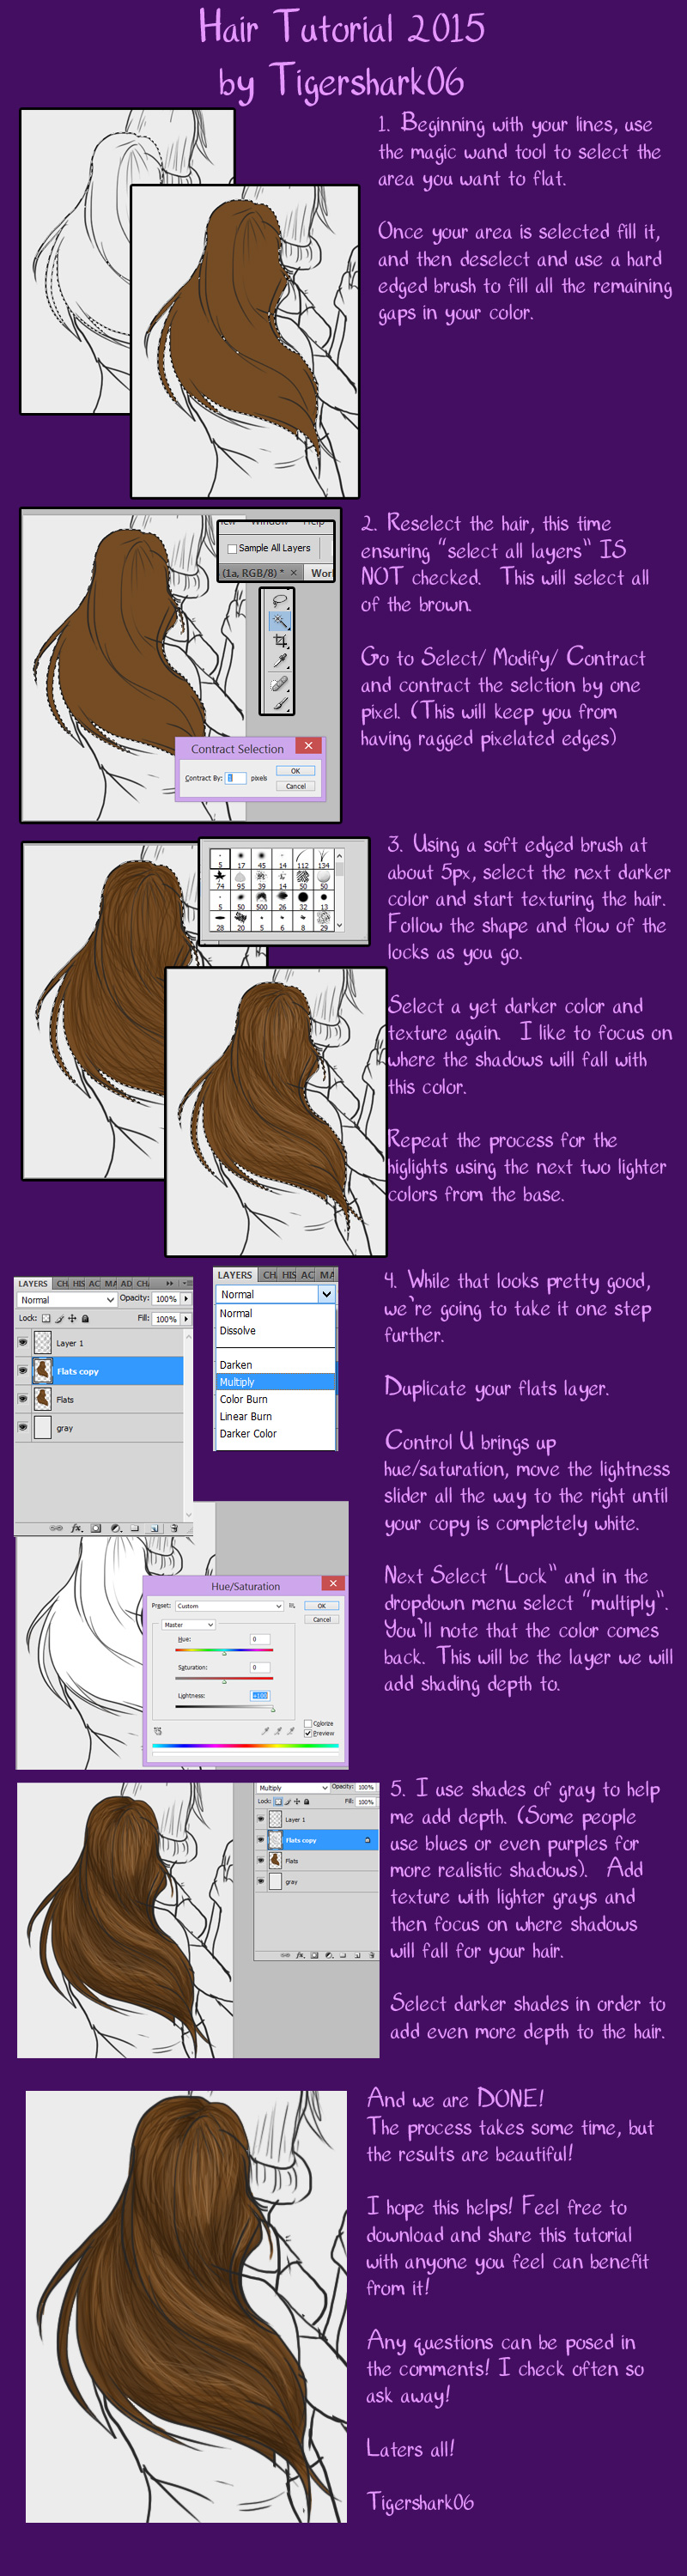 hair_tutorial_2015_by_tigershark06-d16xwew